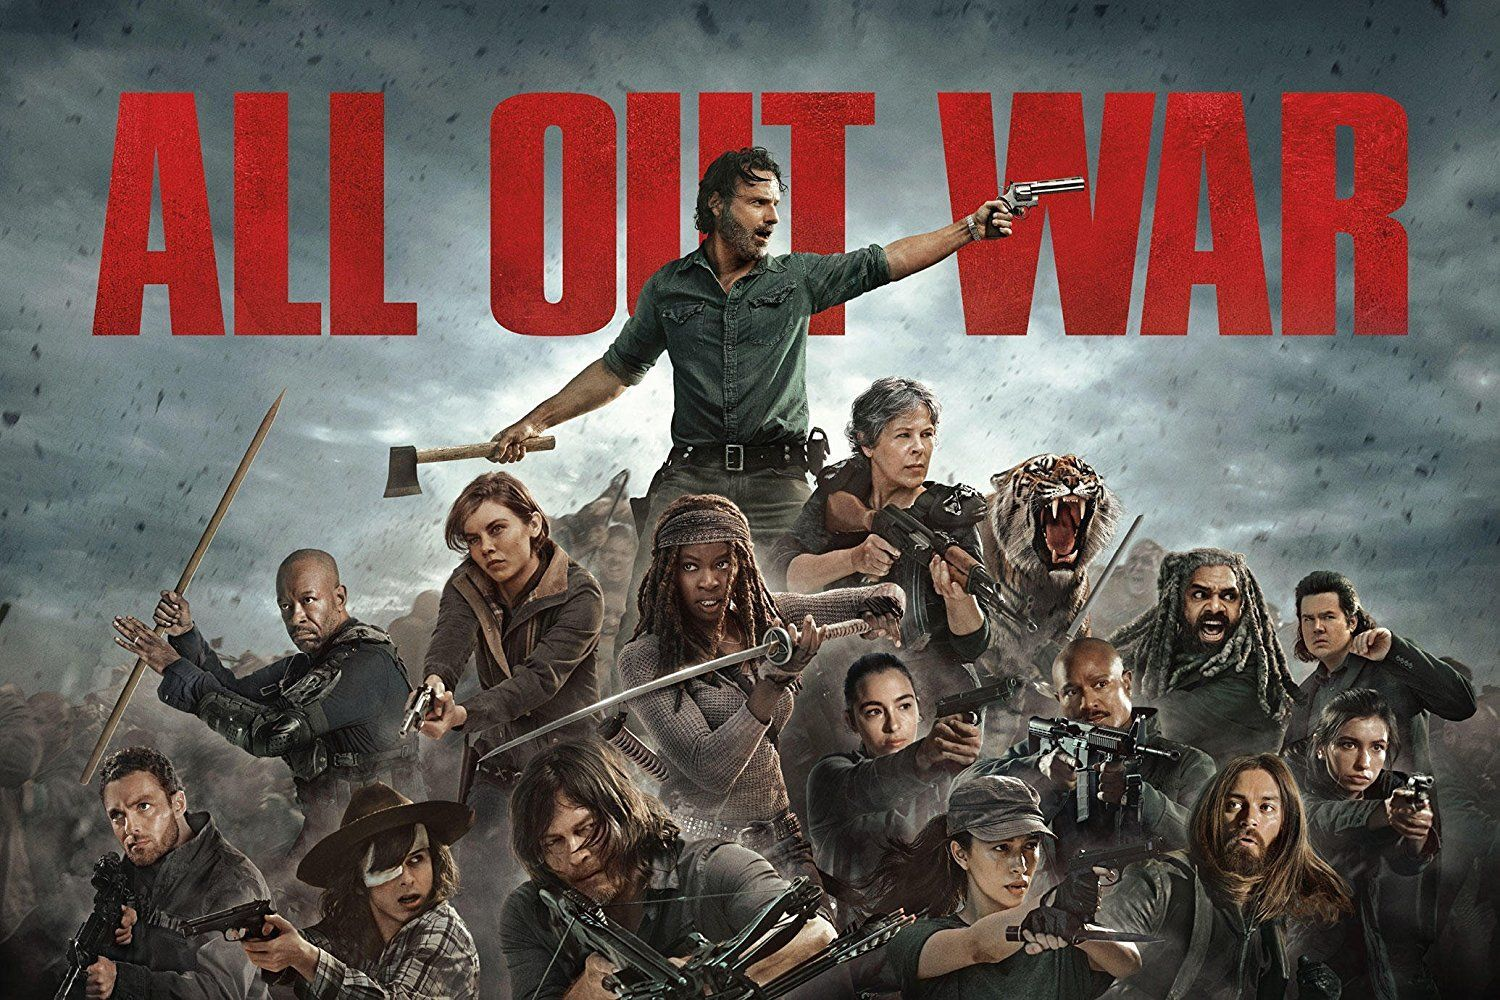 The Walking Dead Poster (11x17)